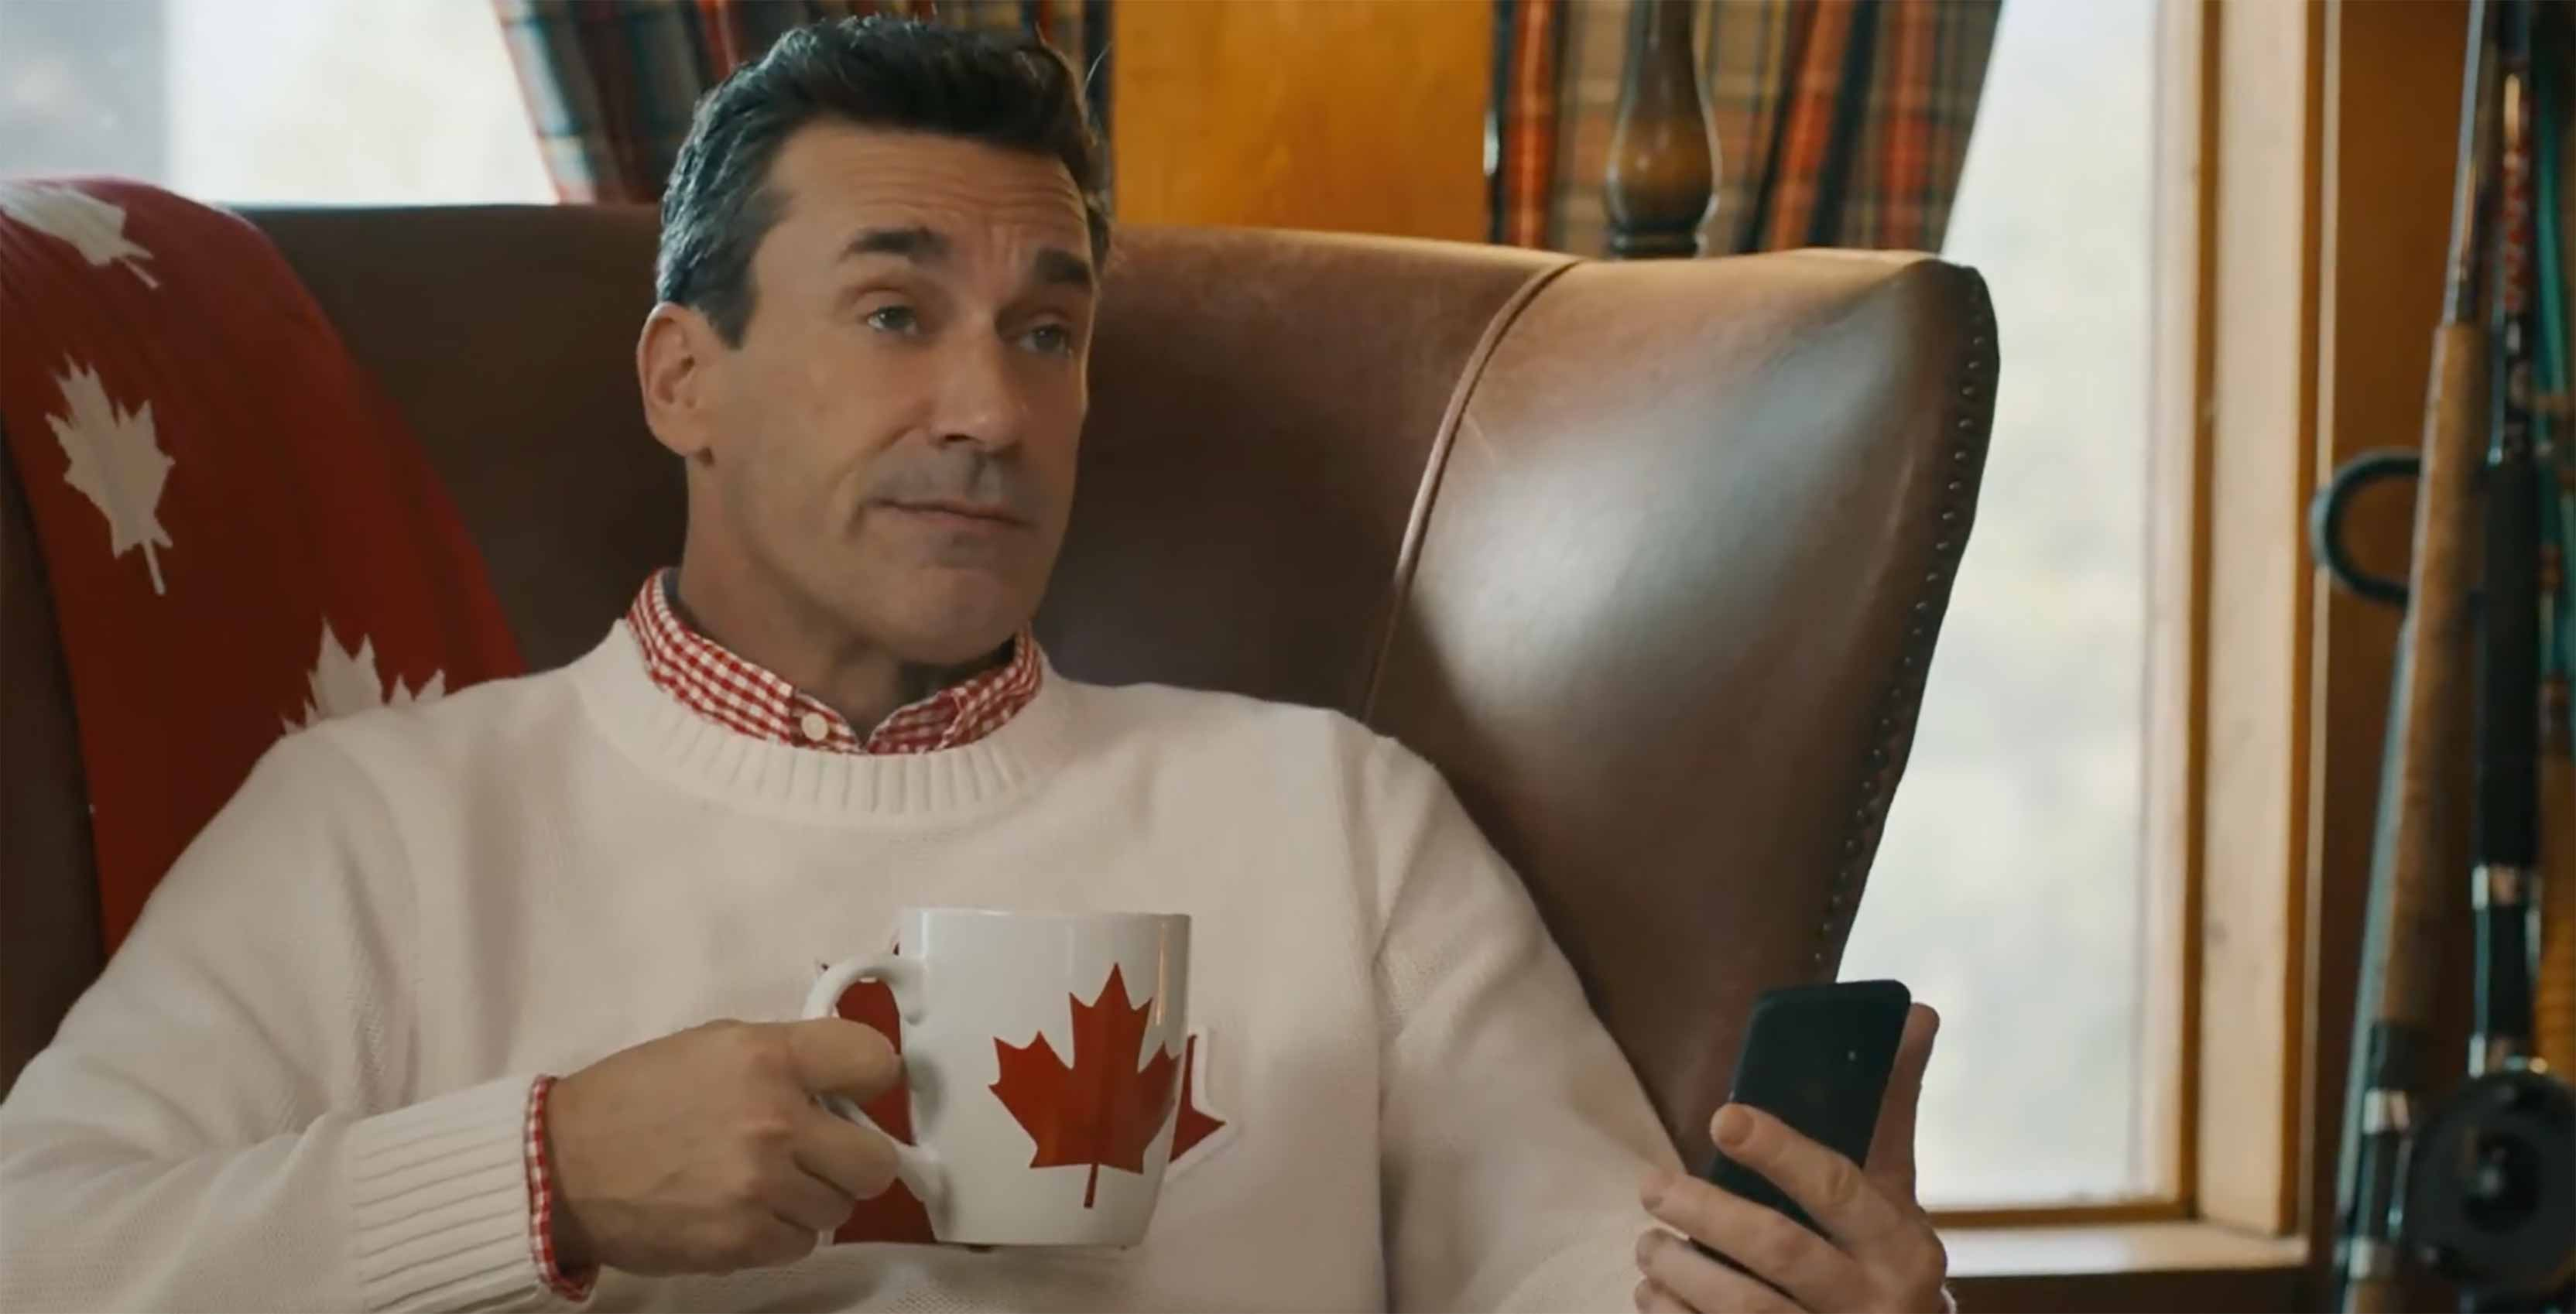 SkipTheDishes reveals Canada's ordering habits alongside 'honourary Canadian' Jon Hamm